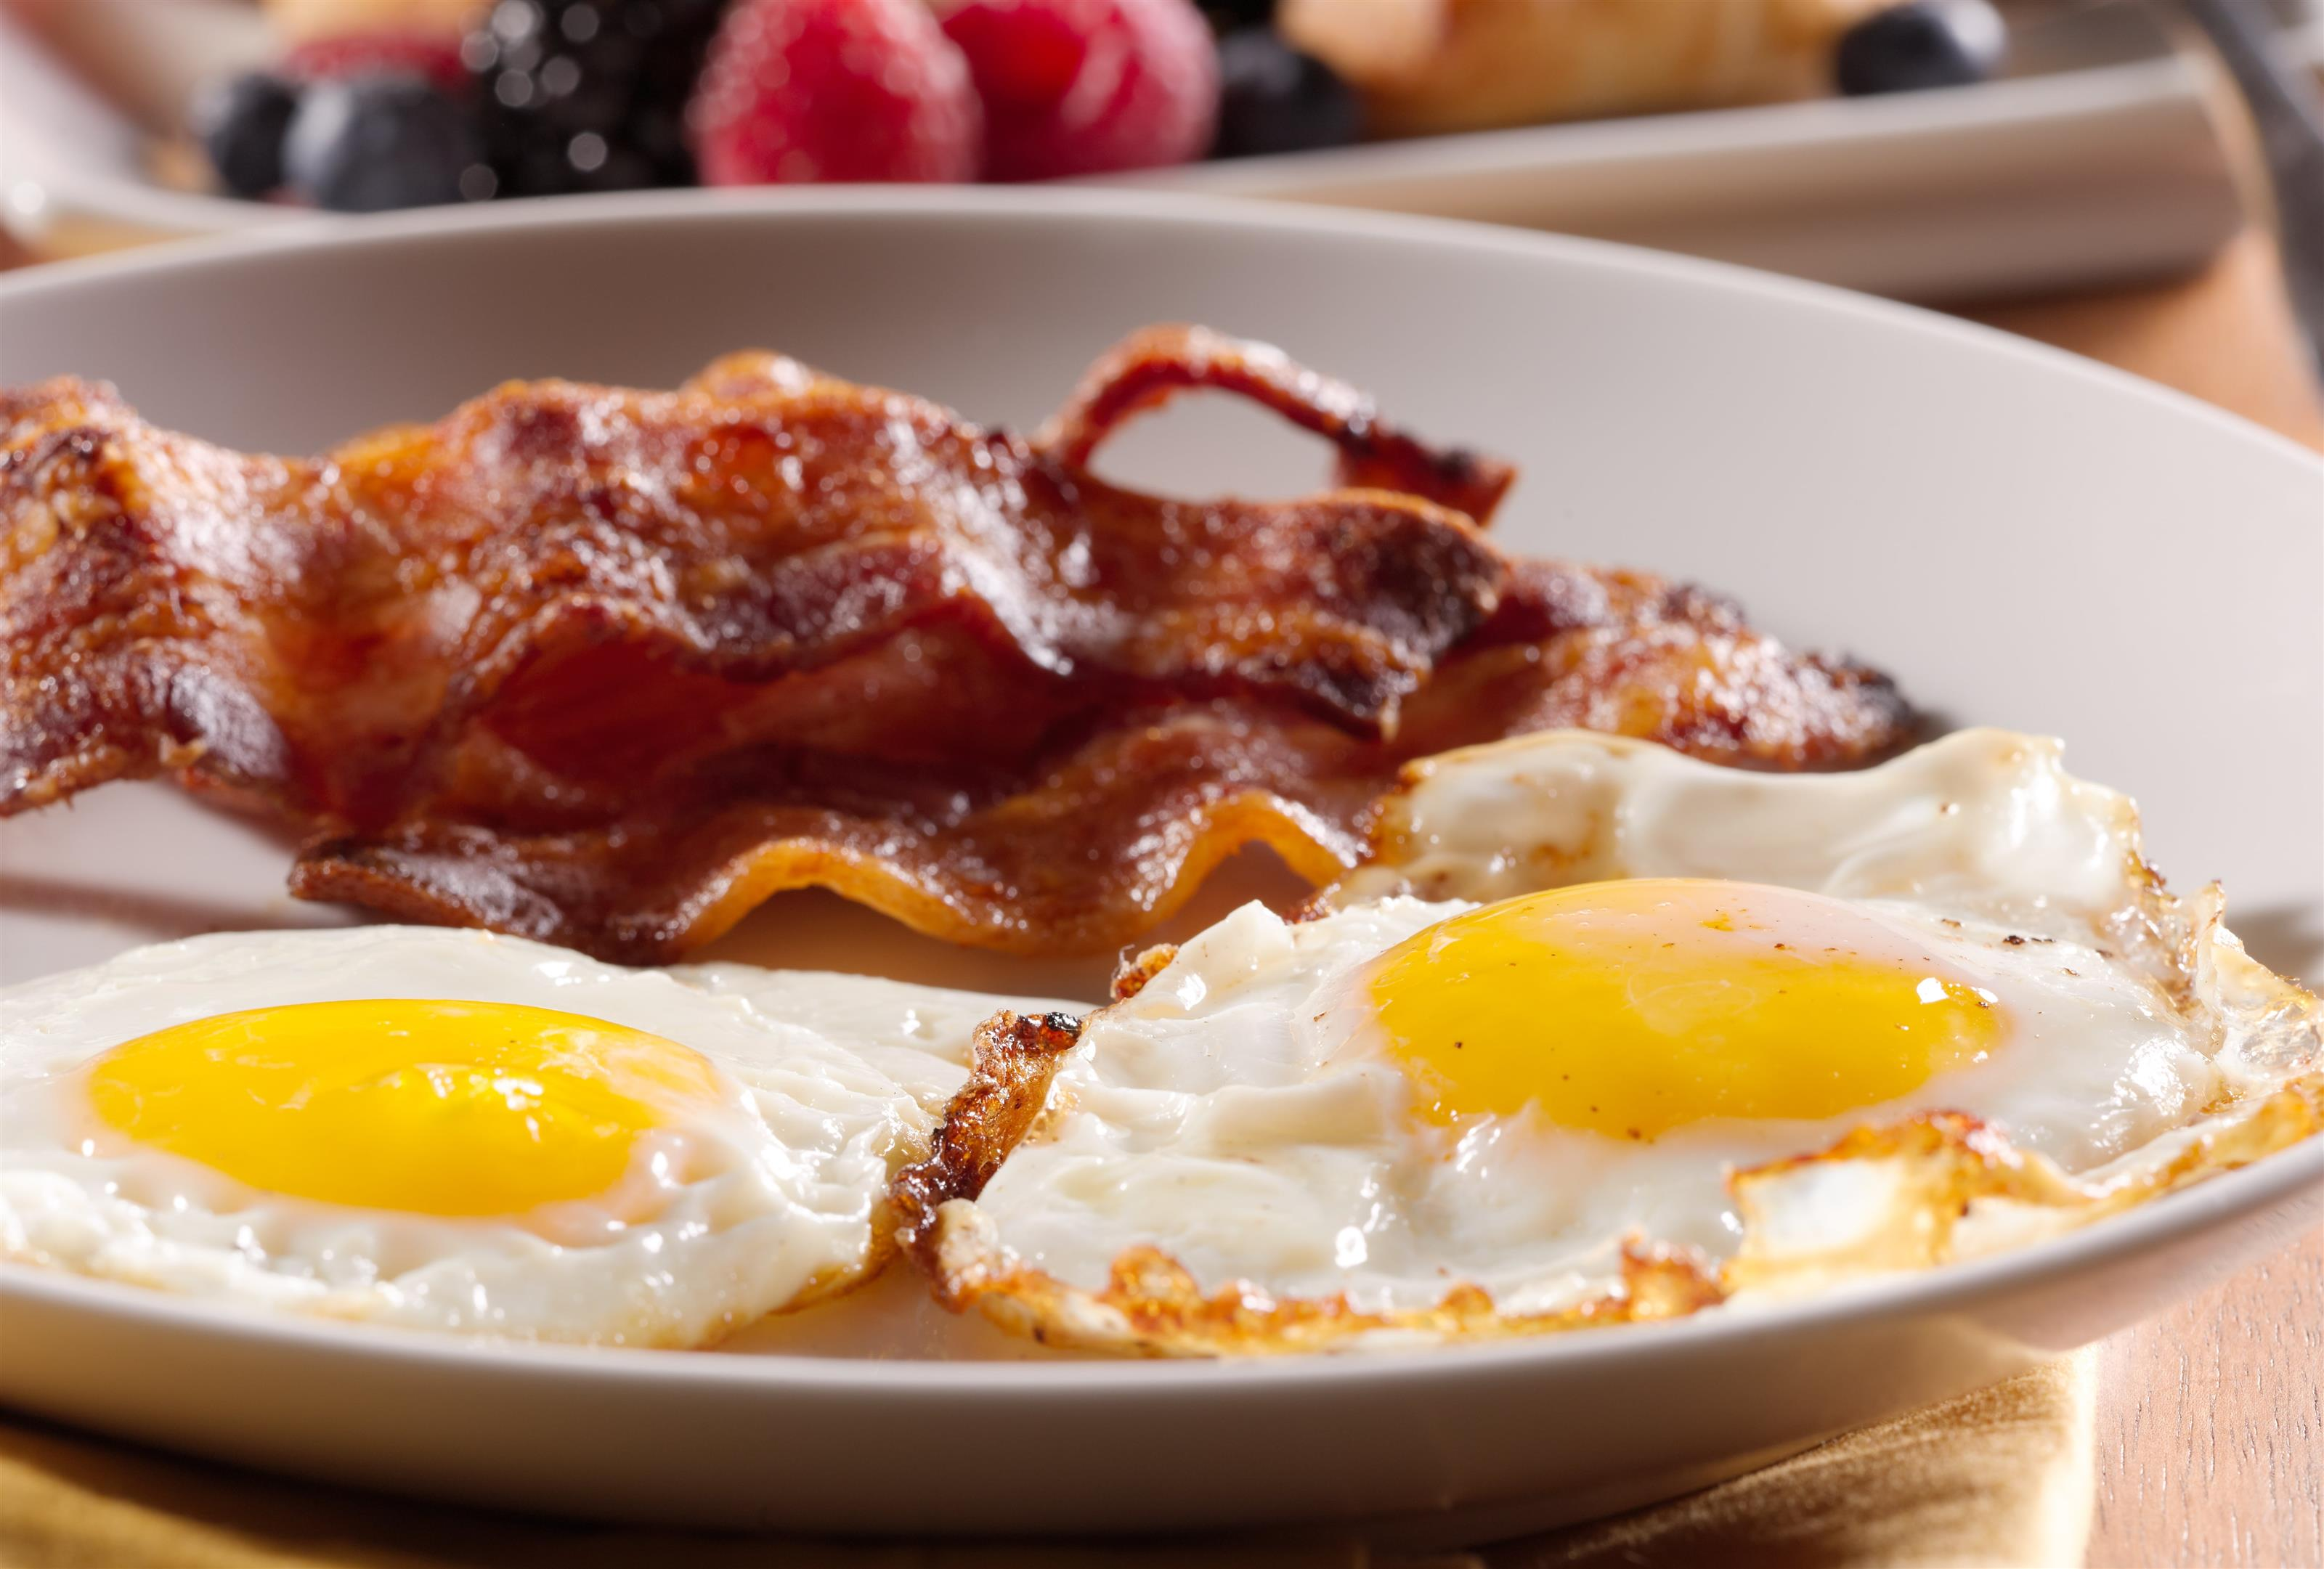 Two eggs sunny side up with strips of bacon